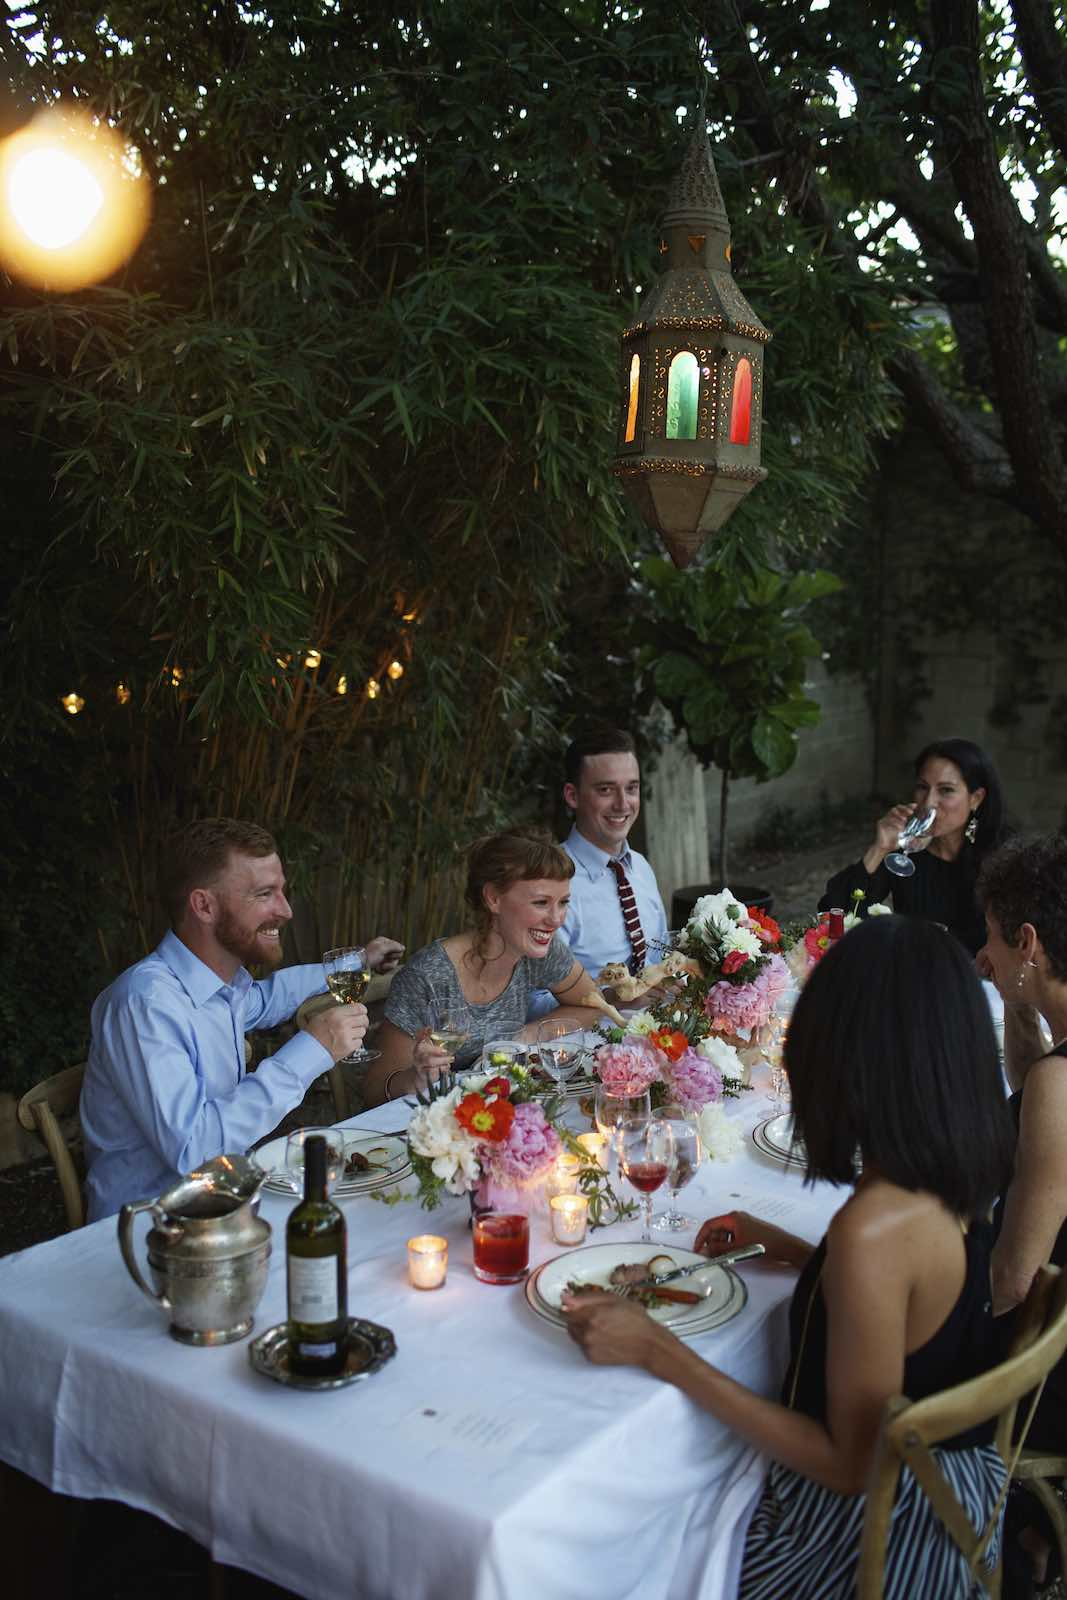 Jody Horton Photography - Candlelit dinner scene with friends laughing over wine.